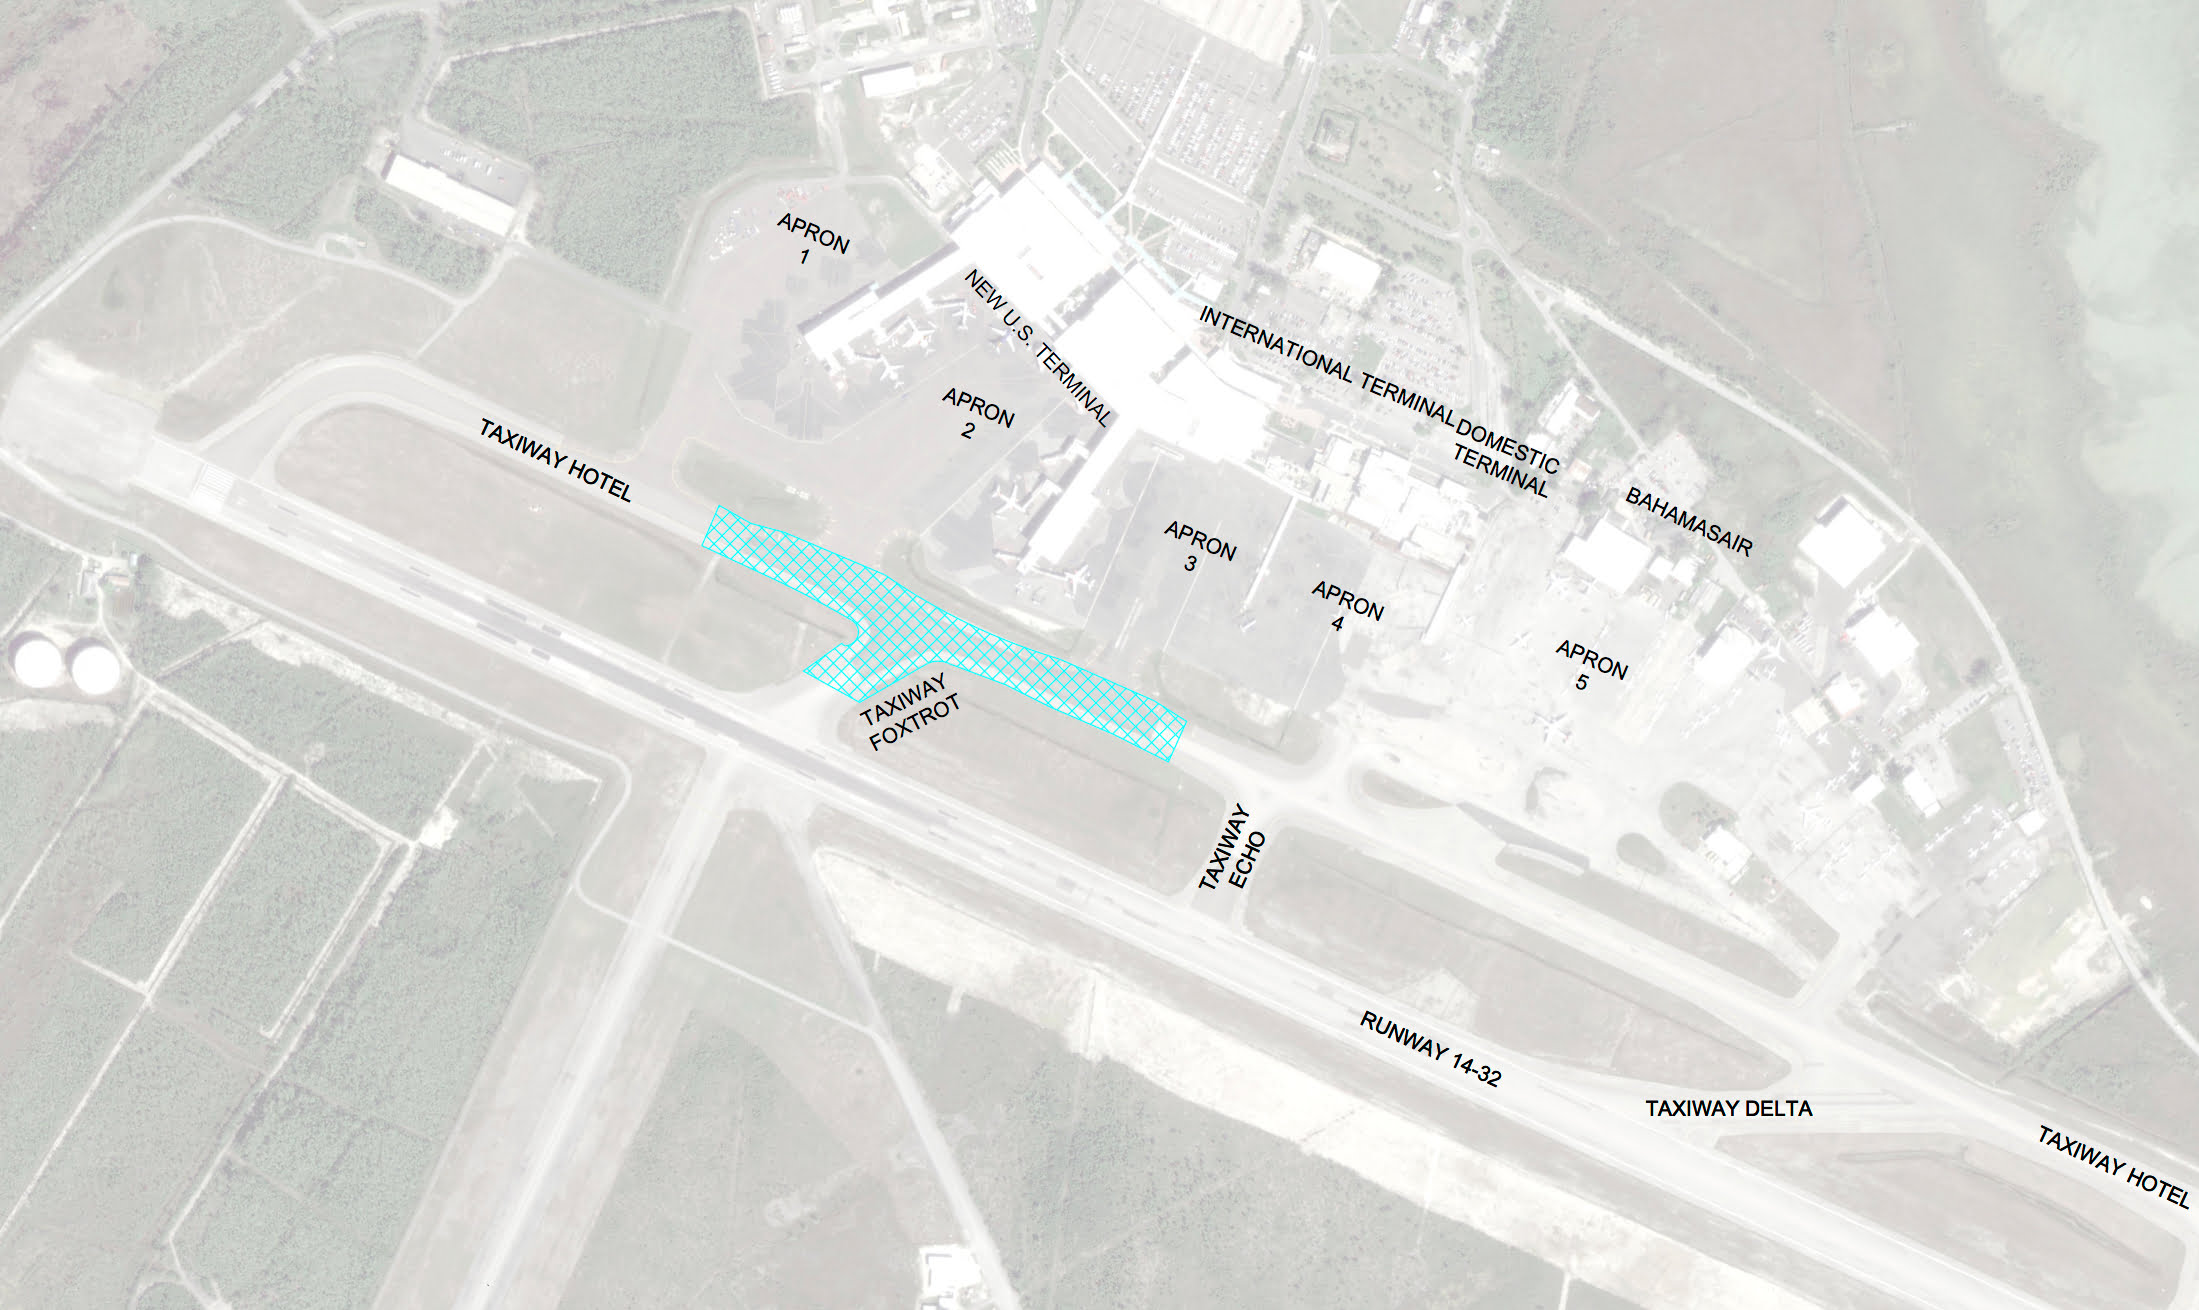 Potential delays ahead as LPIA airside pavement works begin